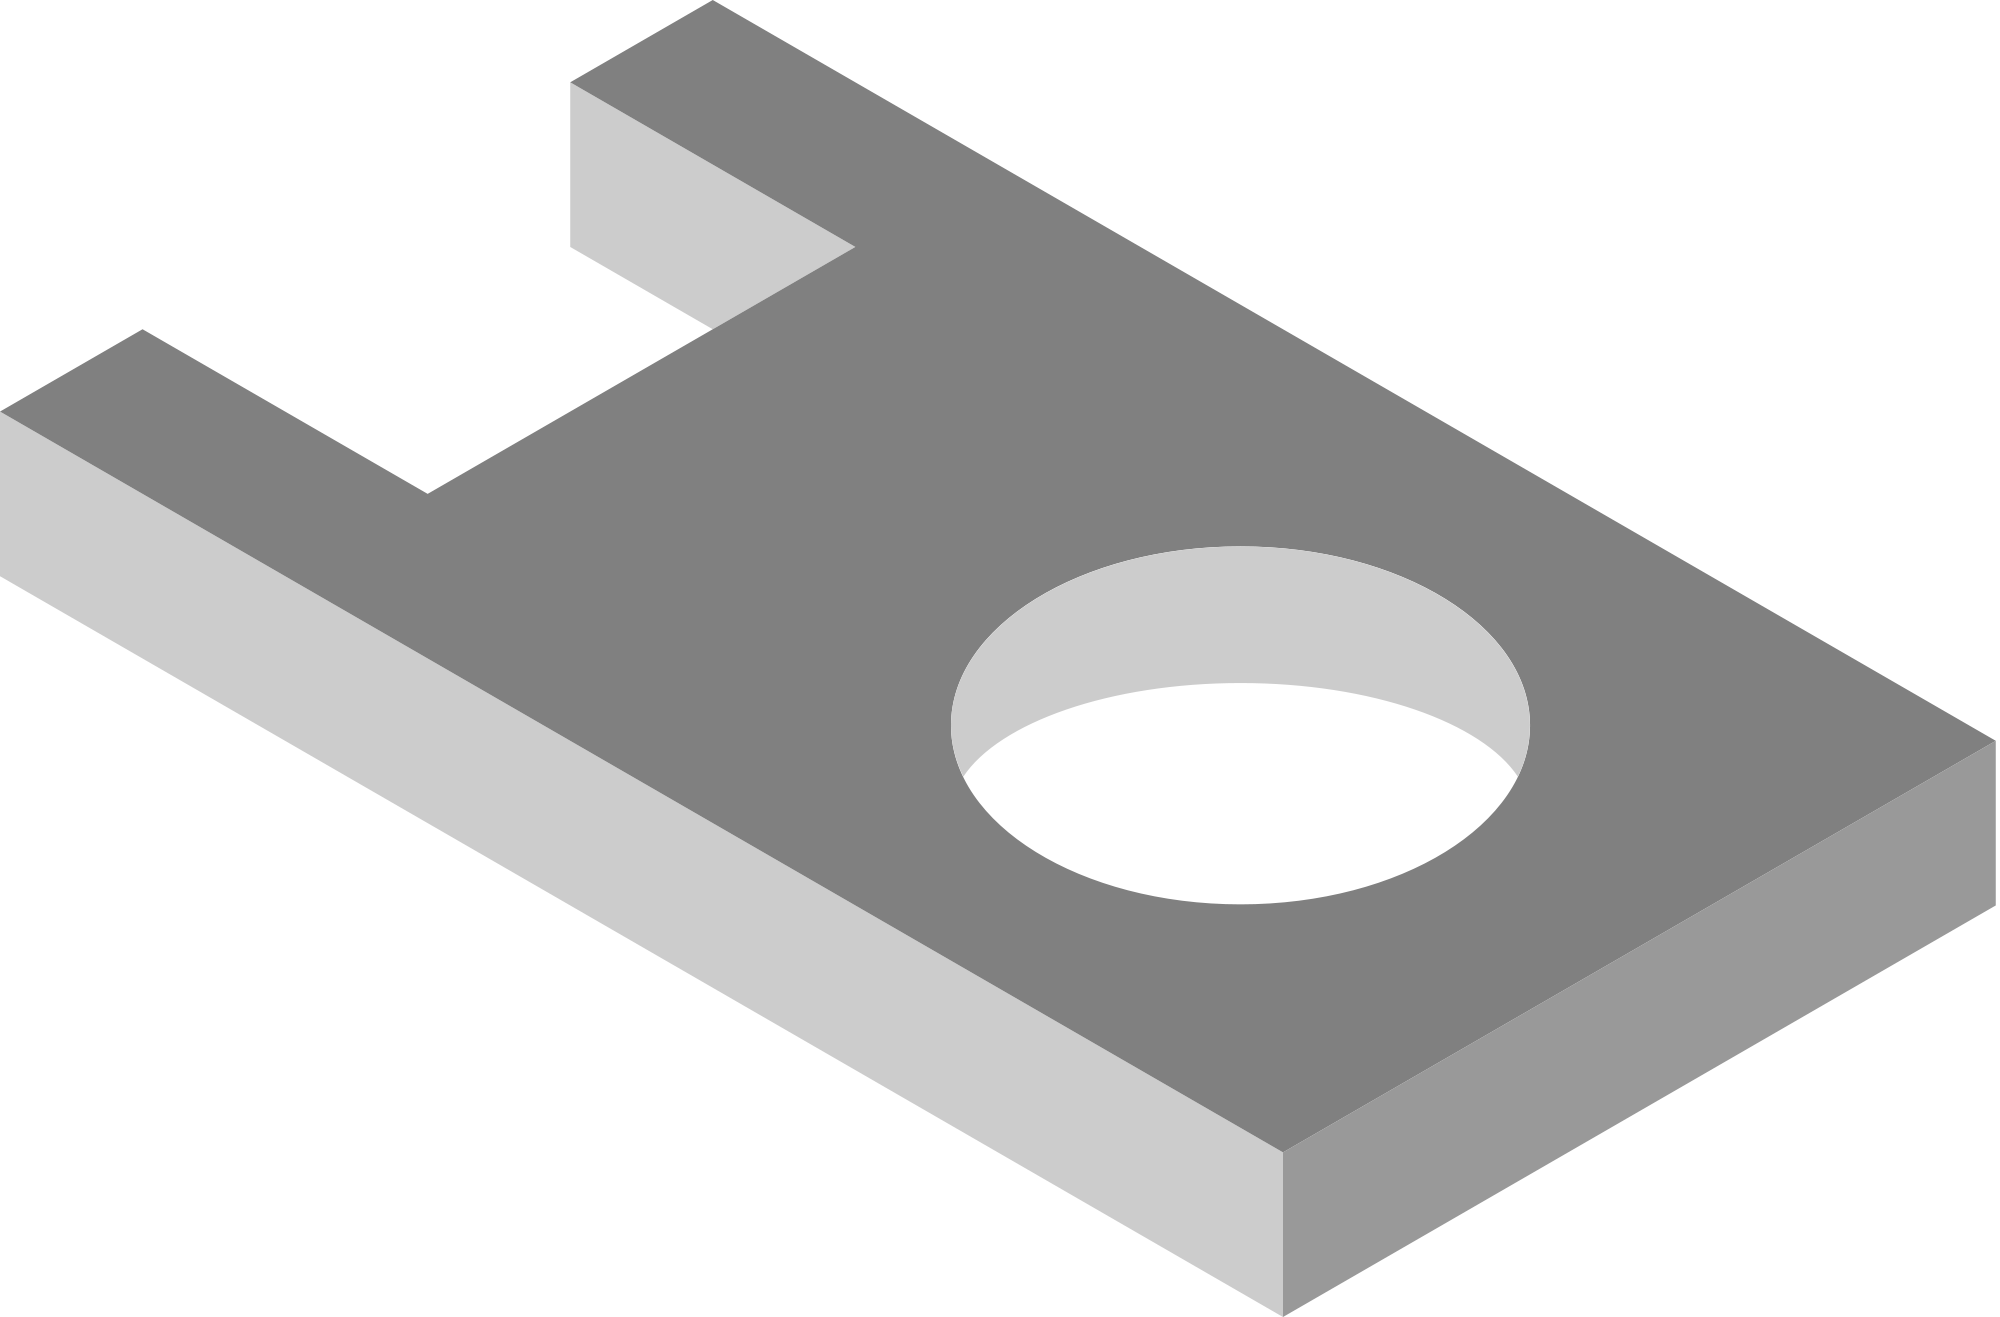 Inscape drawing engineering. File isometric svg wikimedia